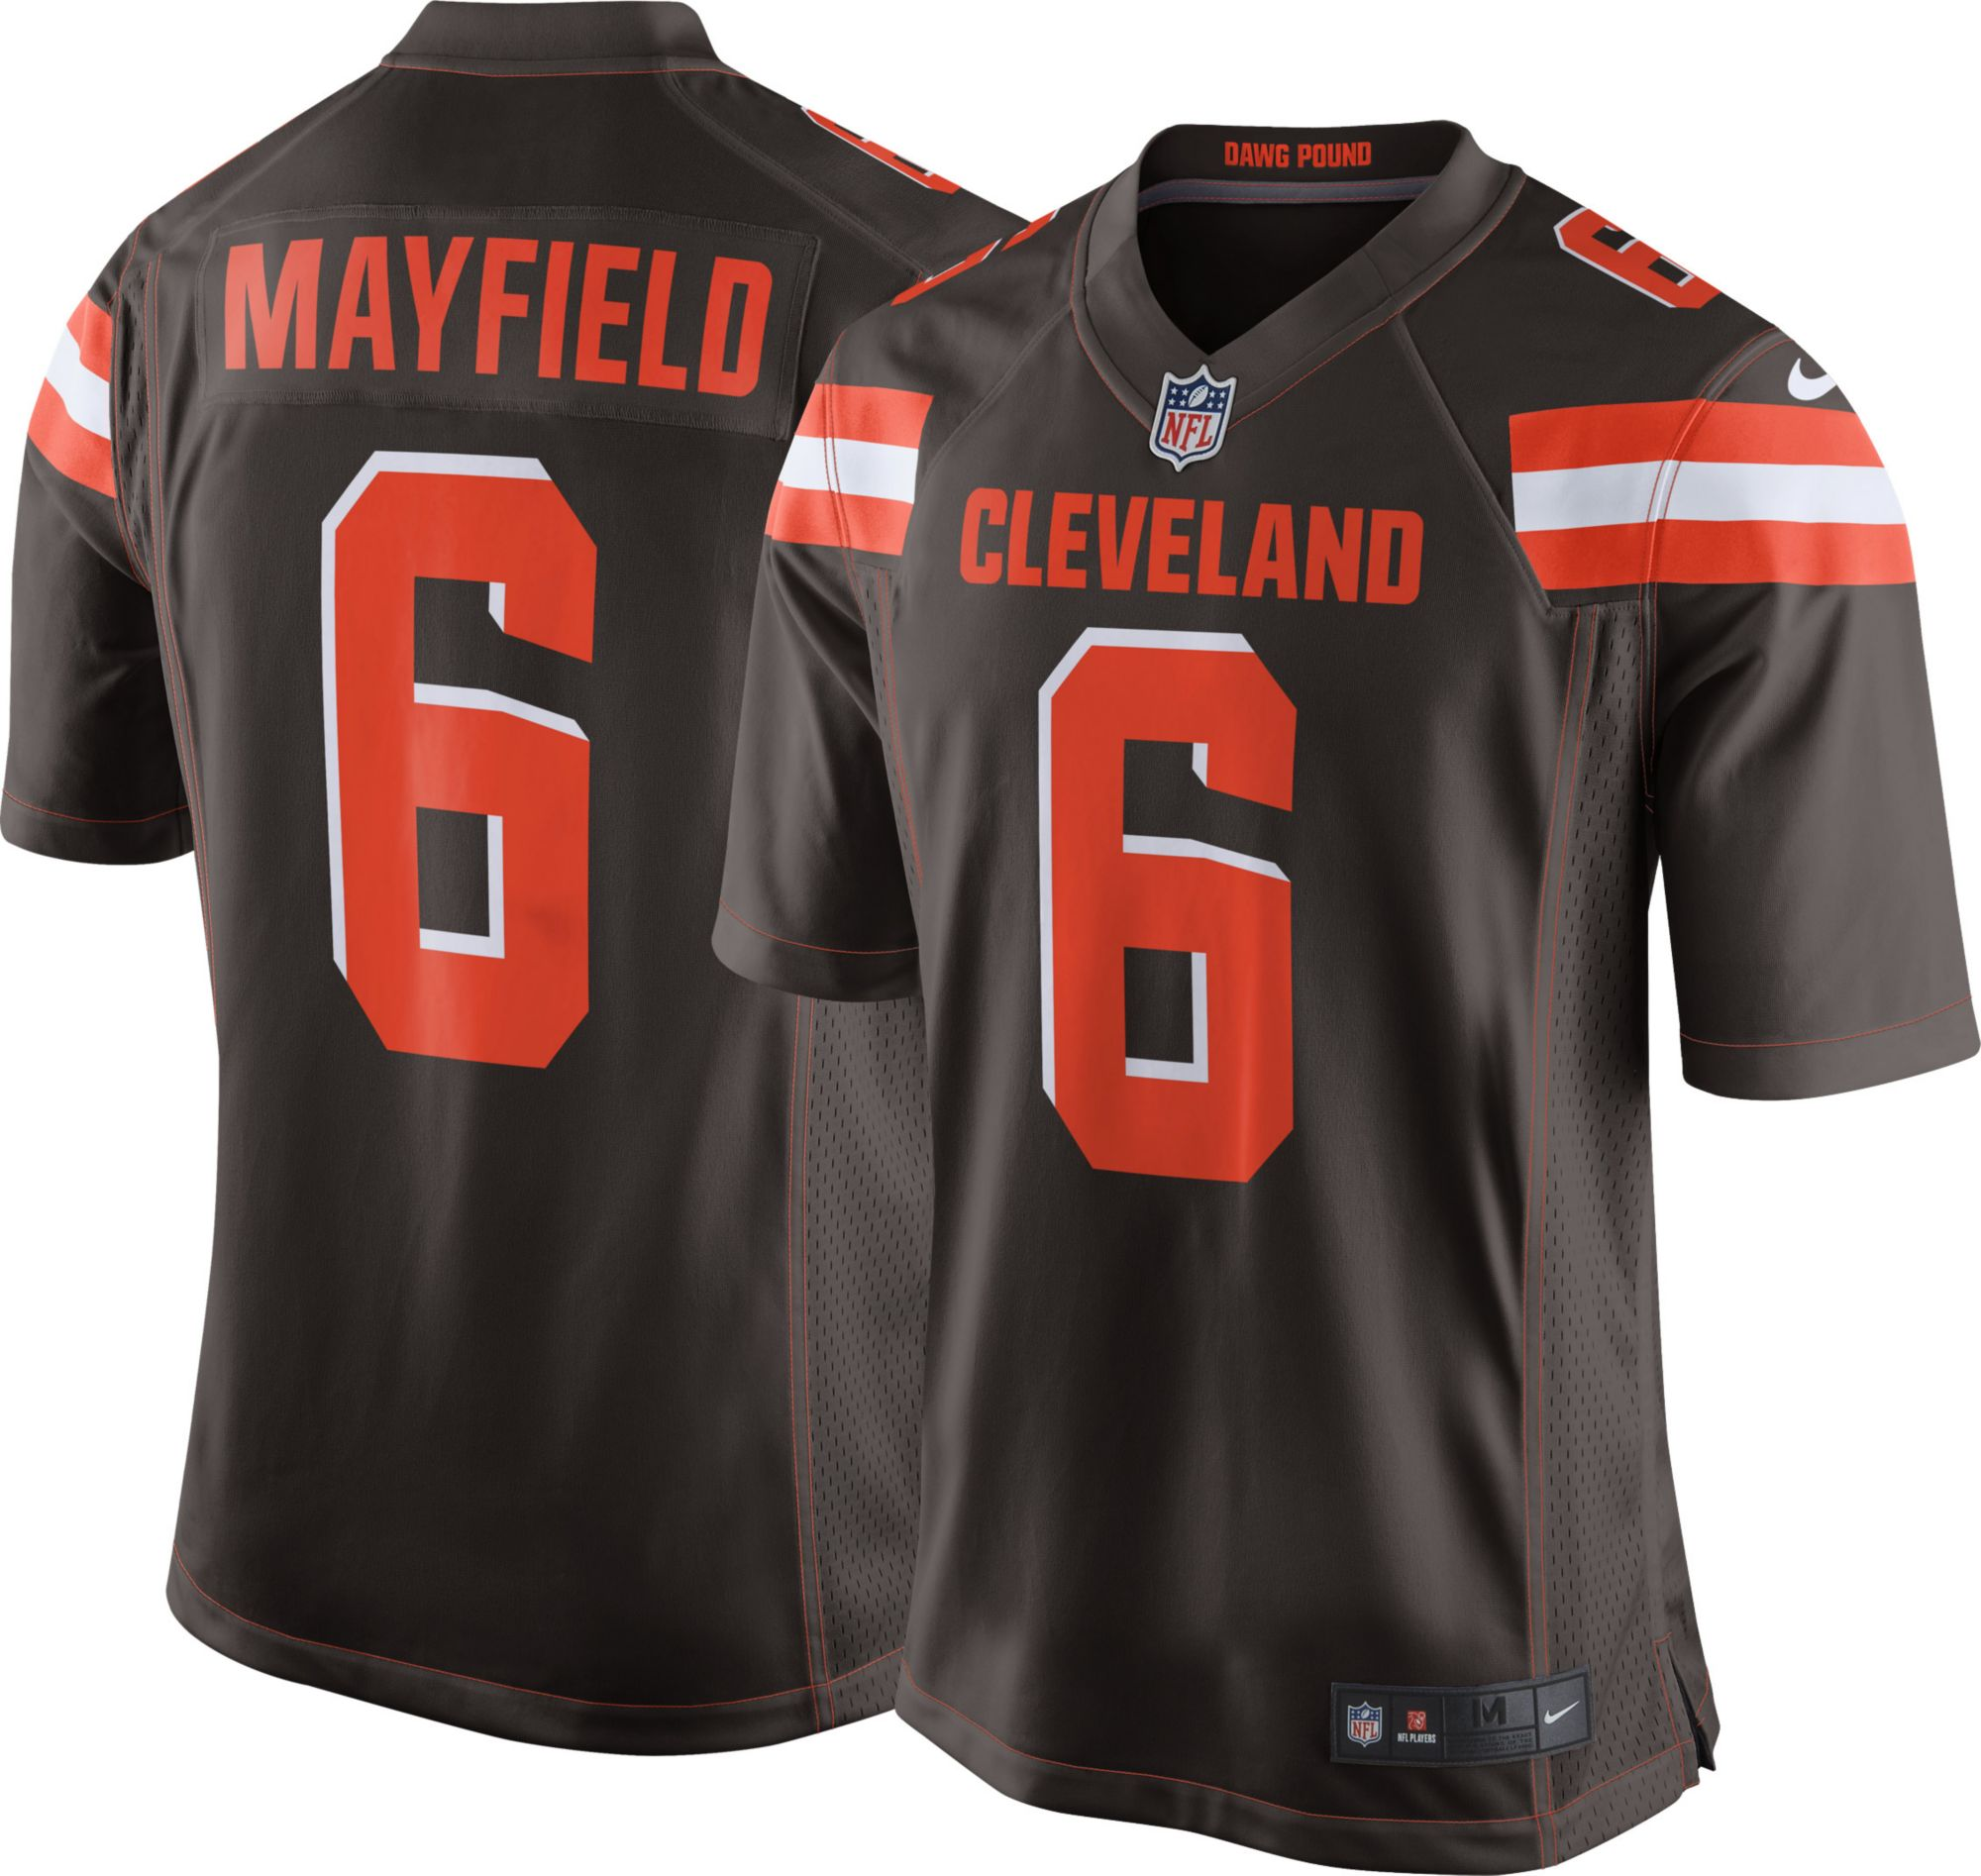 ncaa baker mayfield jersey